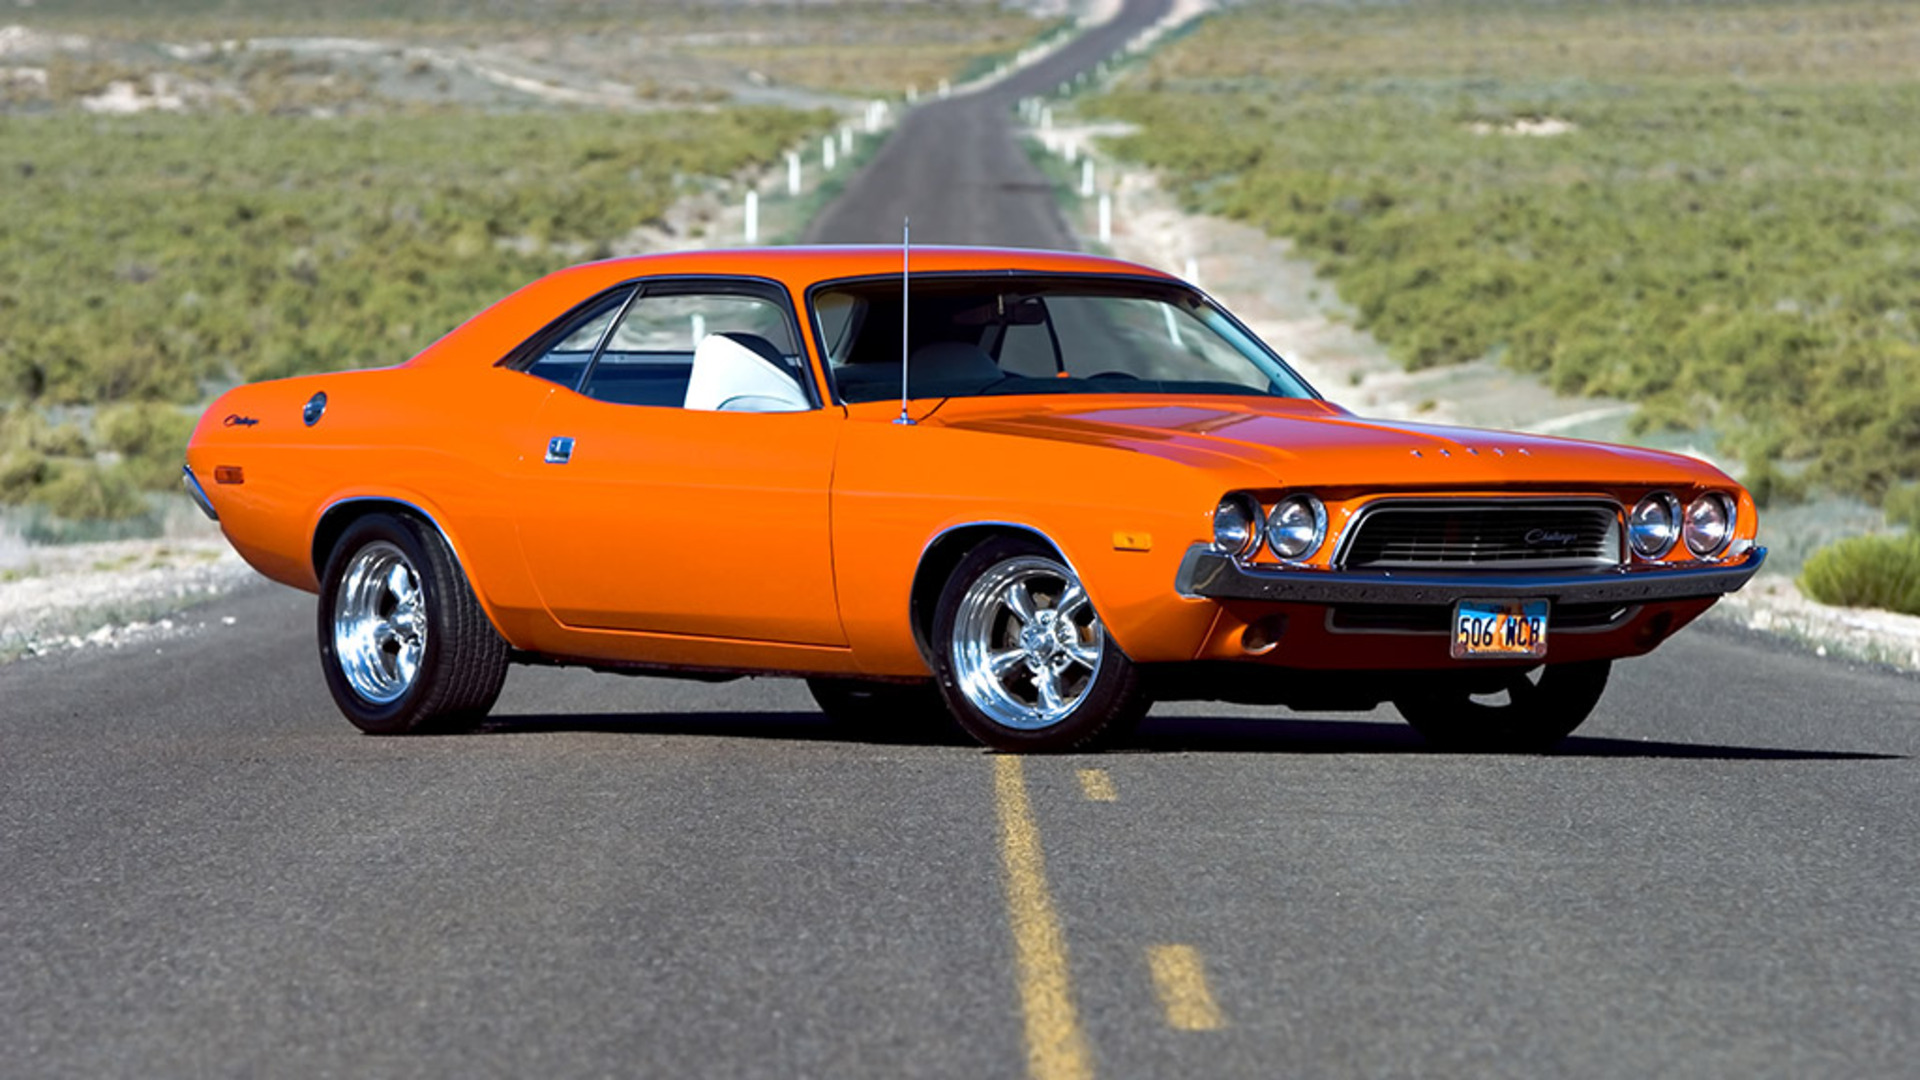 Muscle Cars Wallpaper 1920x1080 Muscle Cars Dodge Challenger 1920x1080